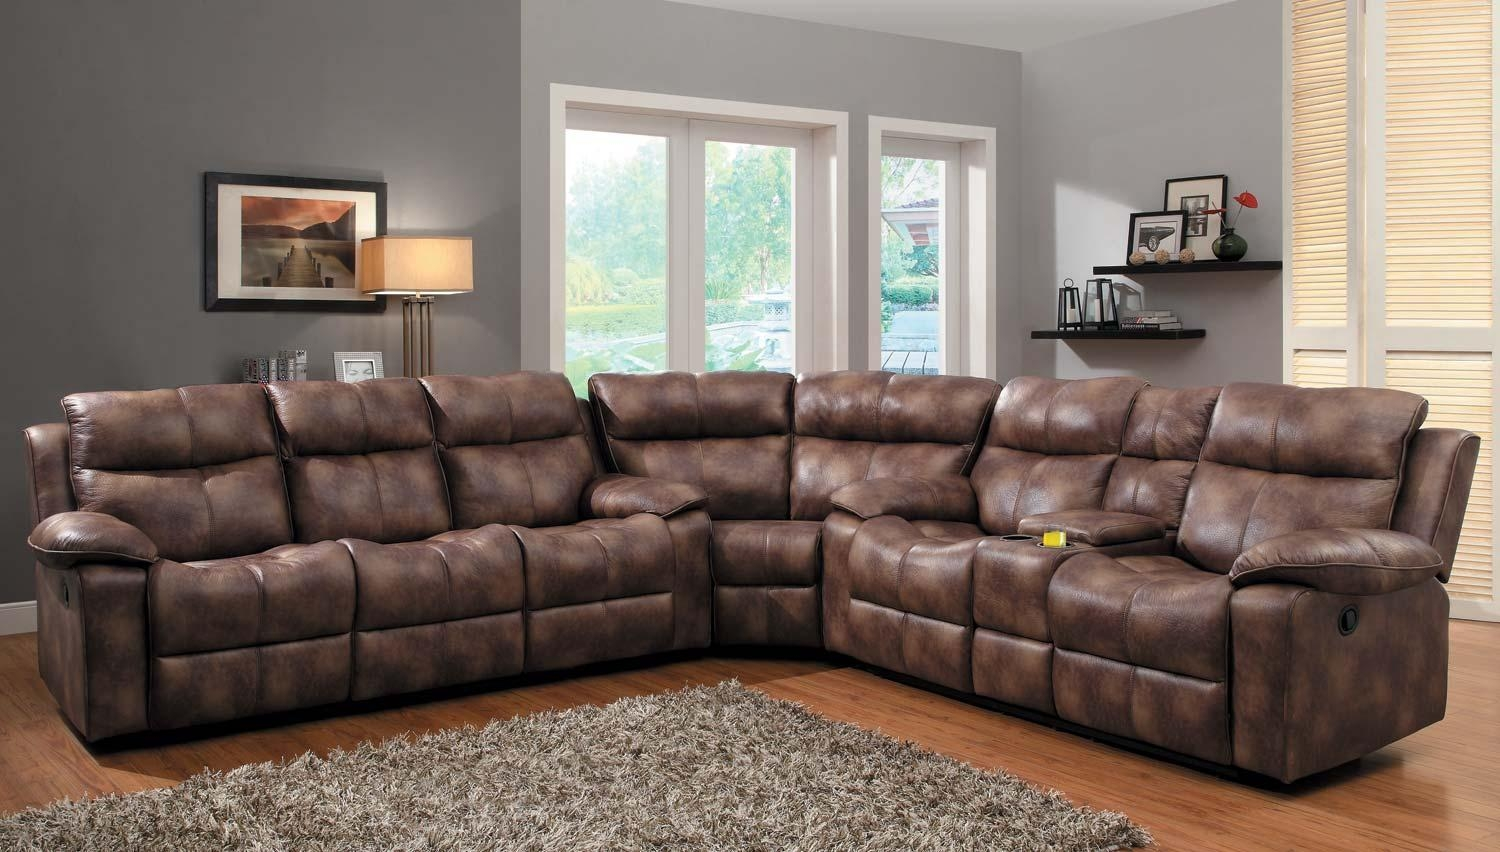 Recliner Sectional Sofas – Sofas Within Sectional Sofa Recliners (View 3 of 20)